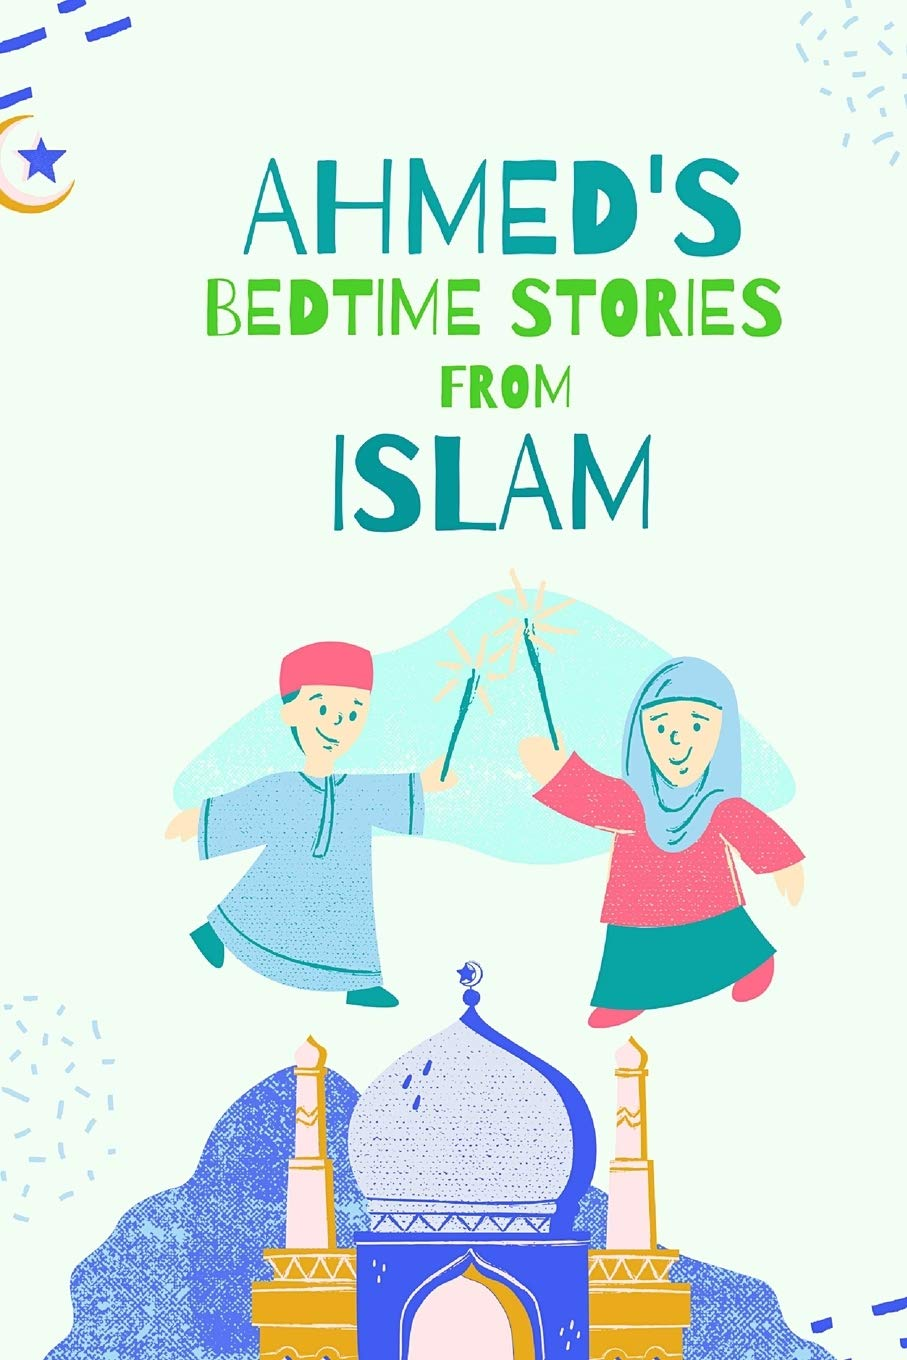 AHMED BEDTIME STORIES FROM ISLAM: Islamic Children's Books on the Quran, the Hadith and the Prophet Muhammad